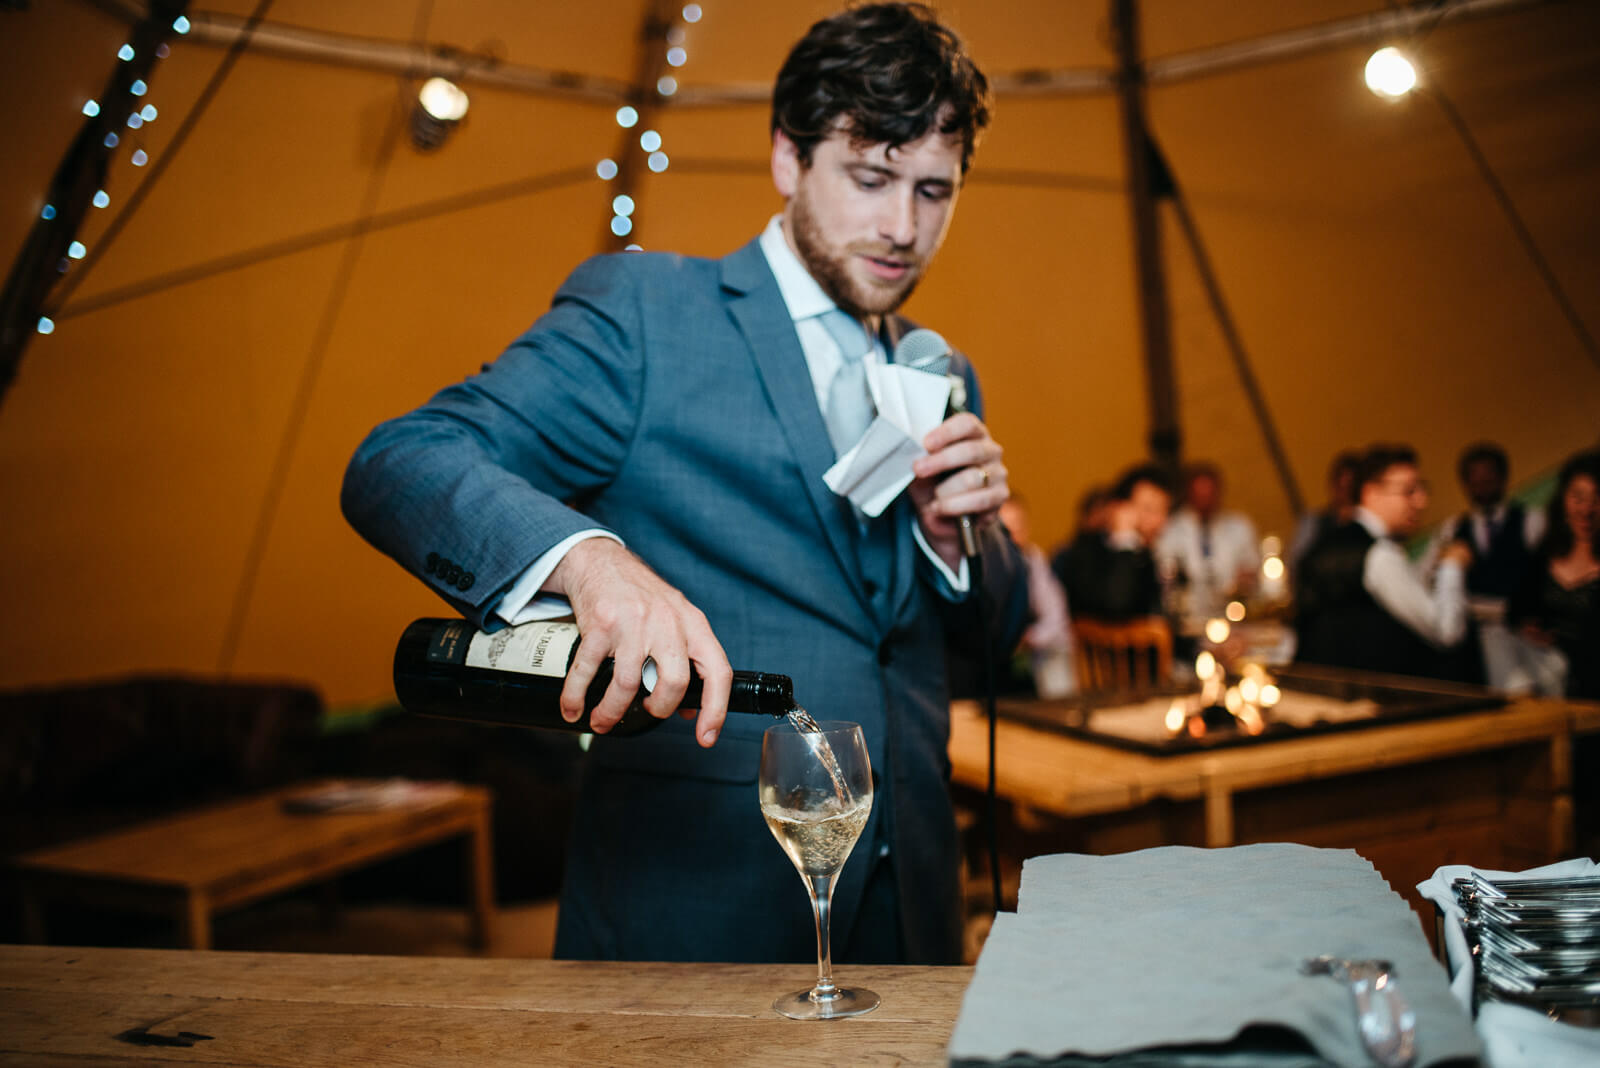 Groom pouring himself a drink in wedding tipi to steady the nerves before his wedding speech